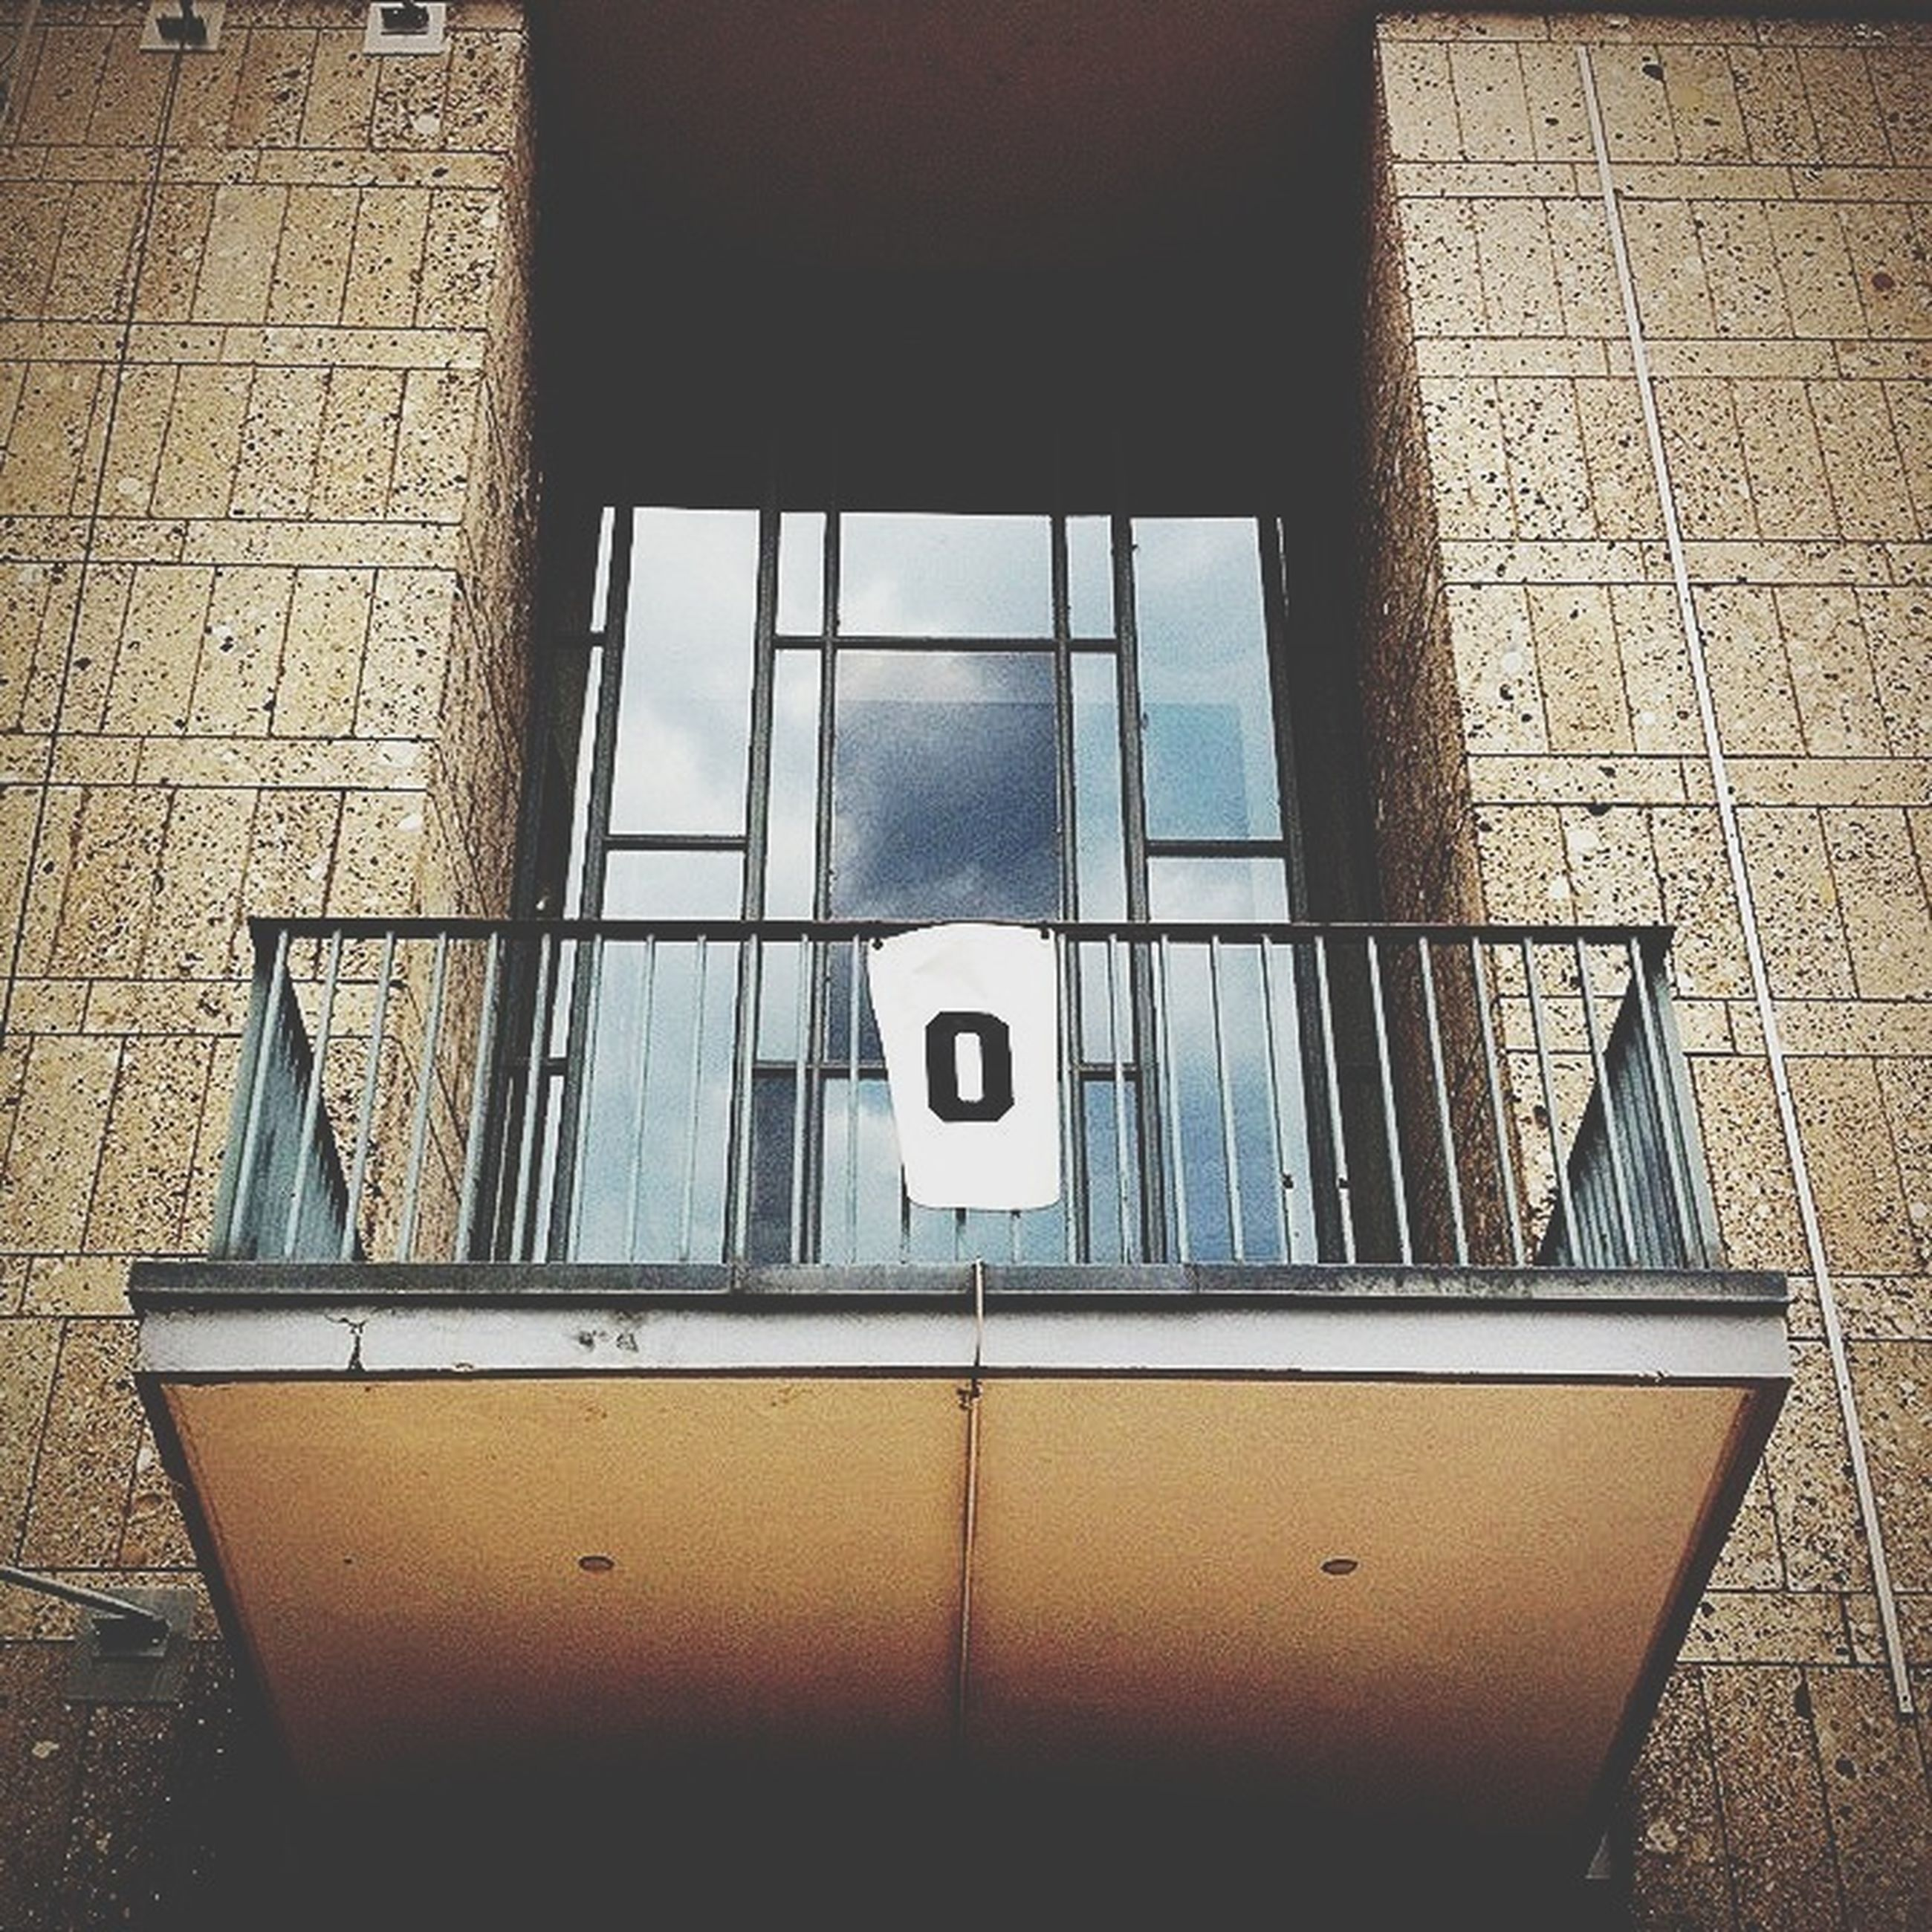 architecture, built structure, window, building exterior, text, wall - building feature, communication, western script, indoors, glass - material, building, wall, day, reflection, no people, low angle view, sunlight, modern, geometric shape, capital letter